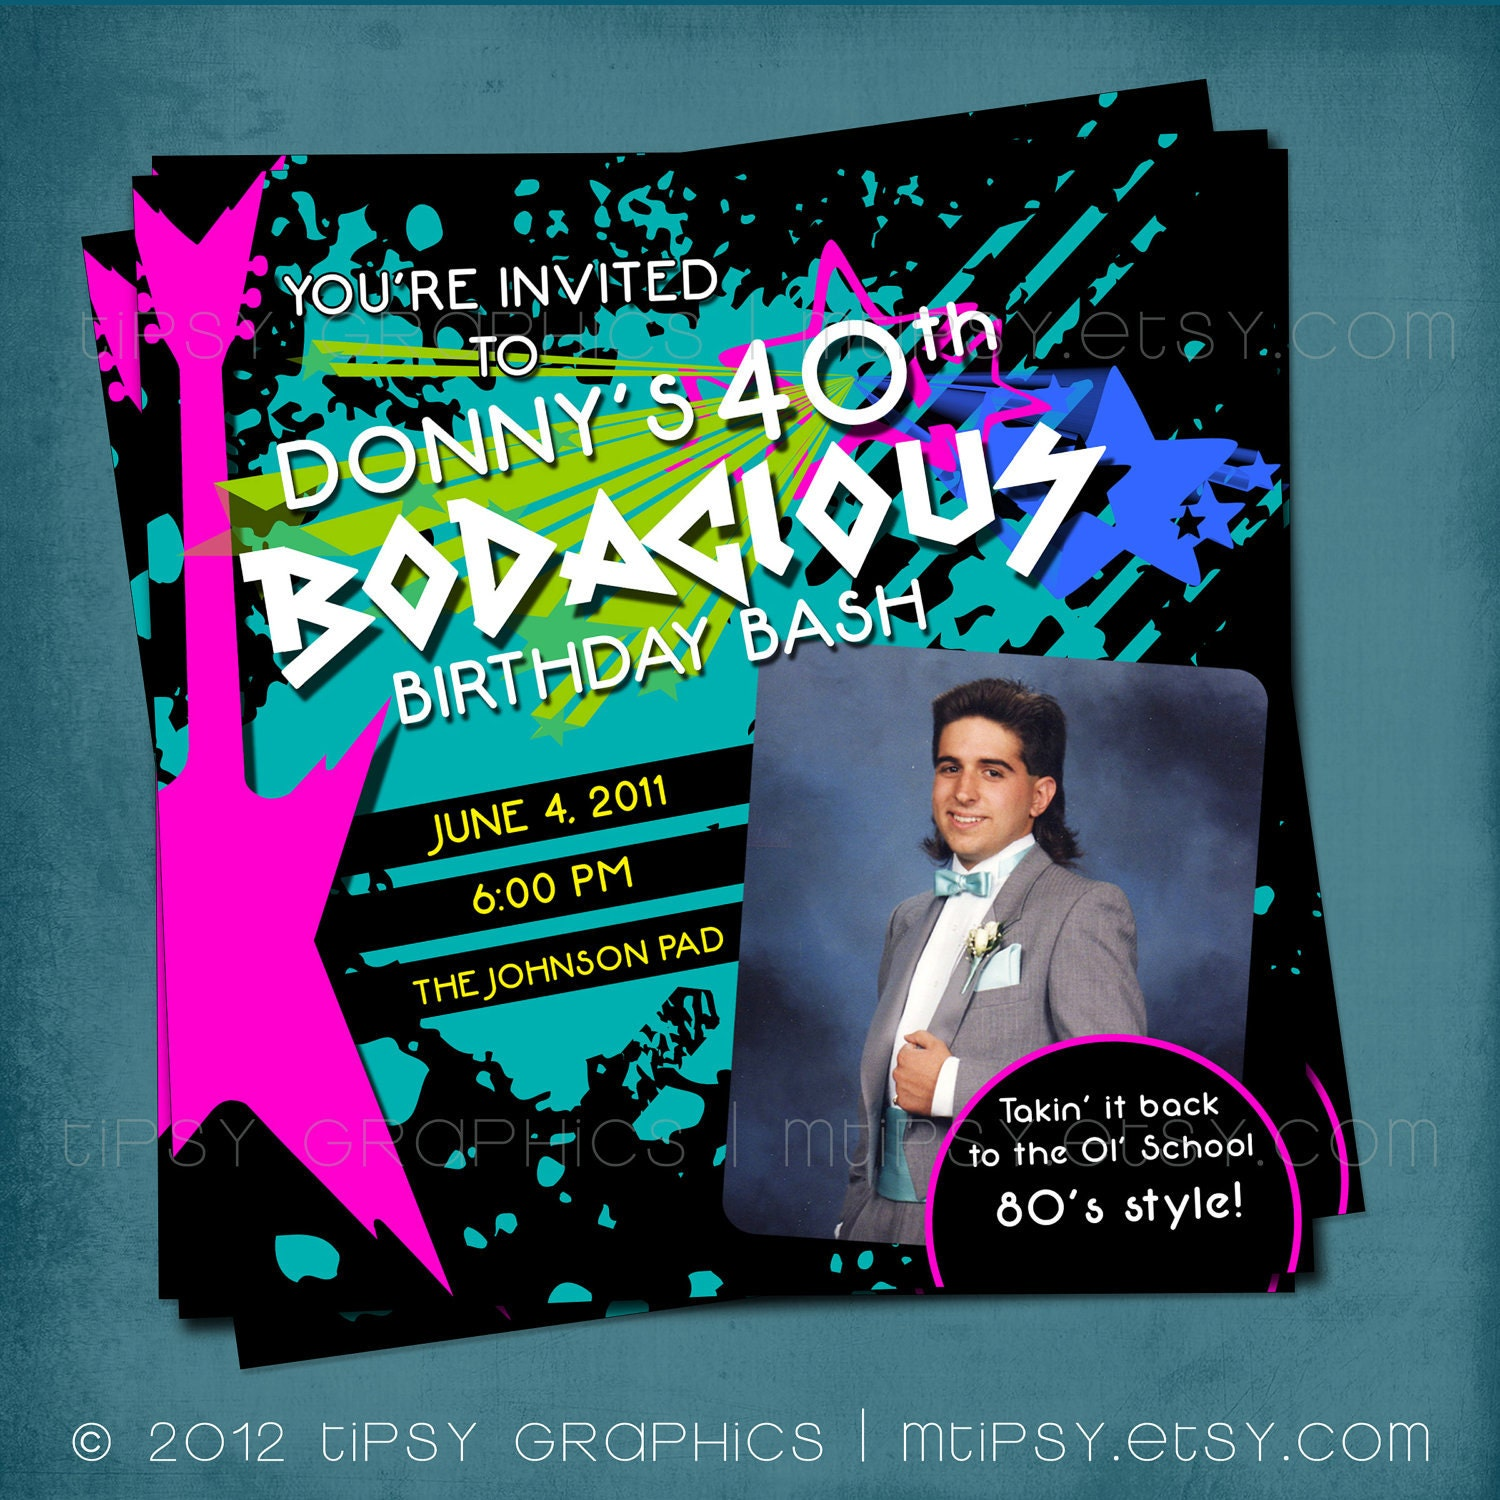 Bodacious Birthday Bash Totally Awesome 80s Party Invite.